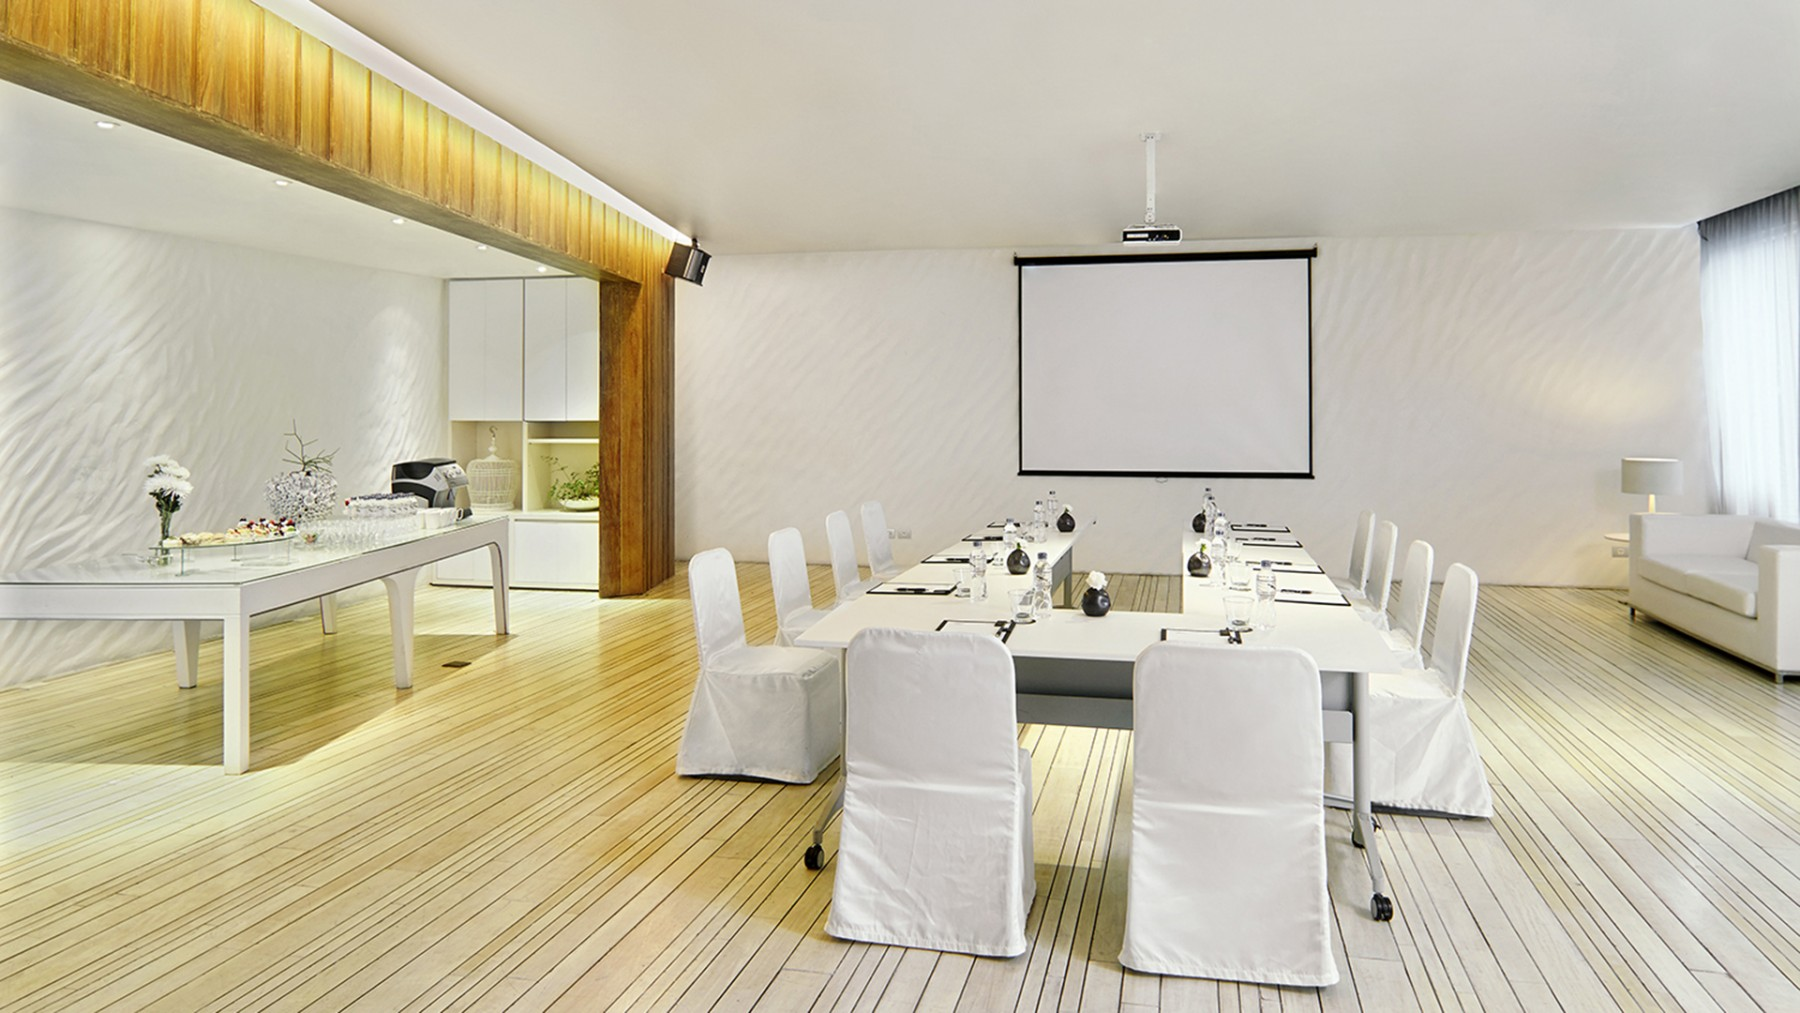 Pattaya-Meeting-Room-021.jpg